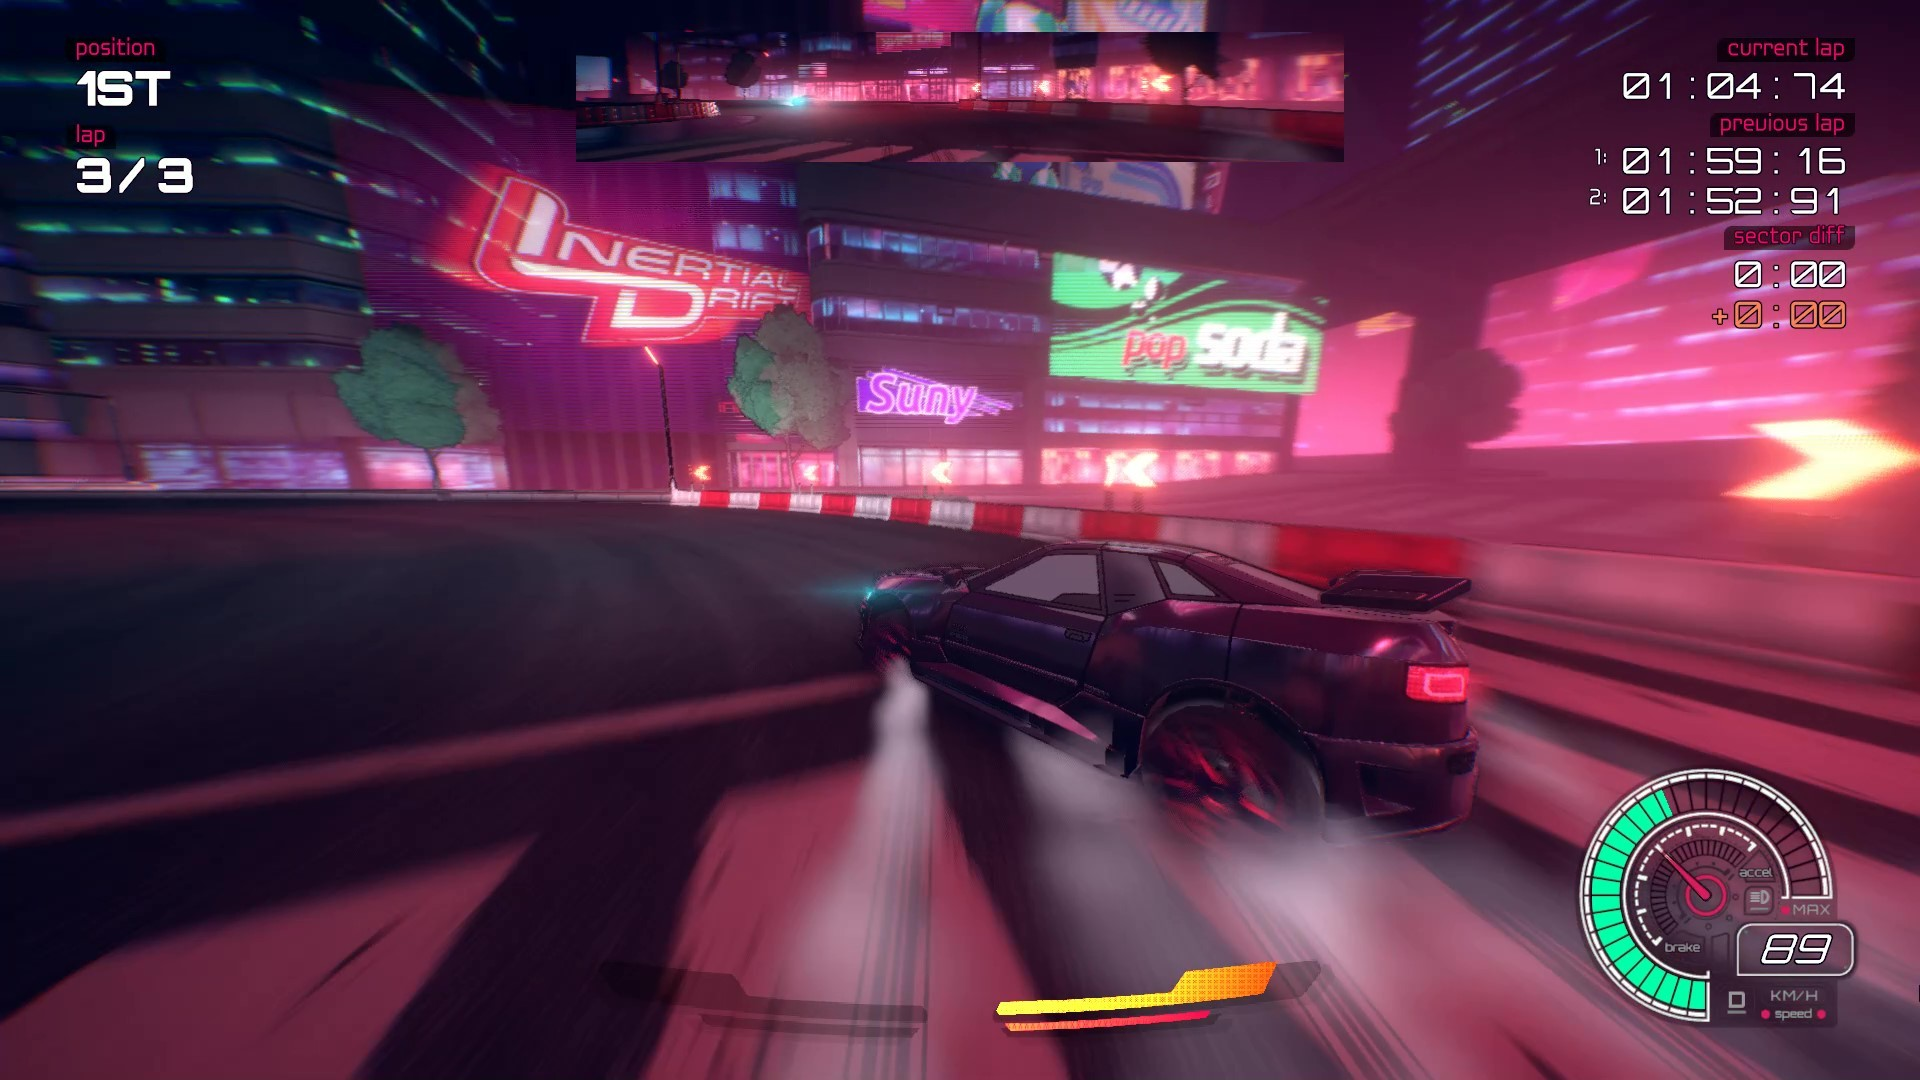 inertial-drift-pc-screenshot-02